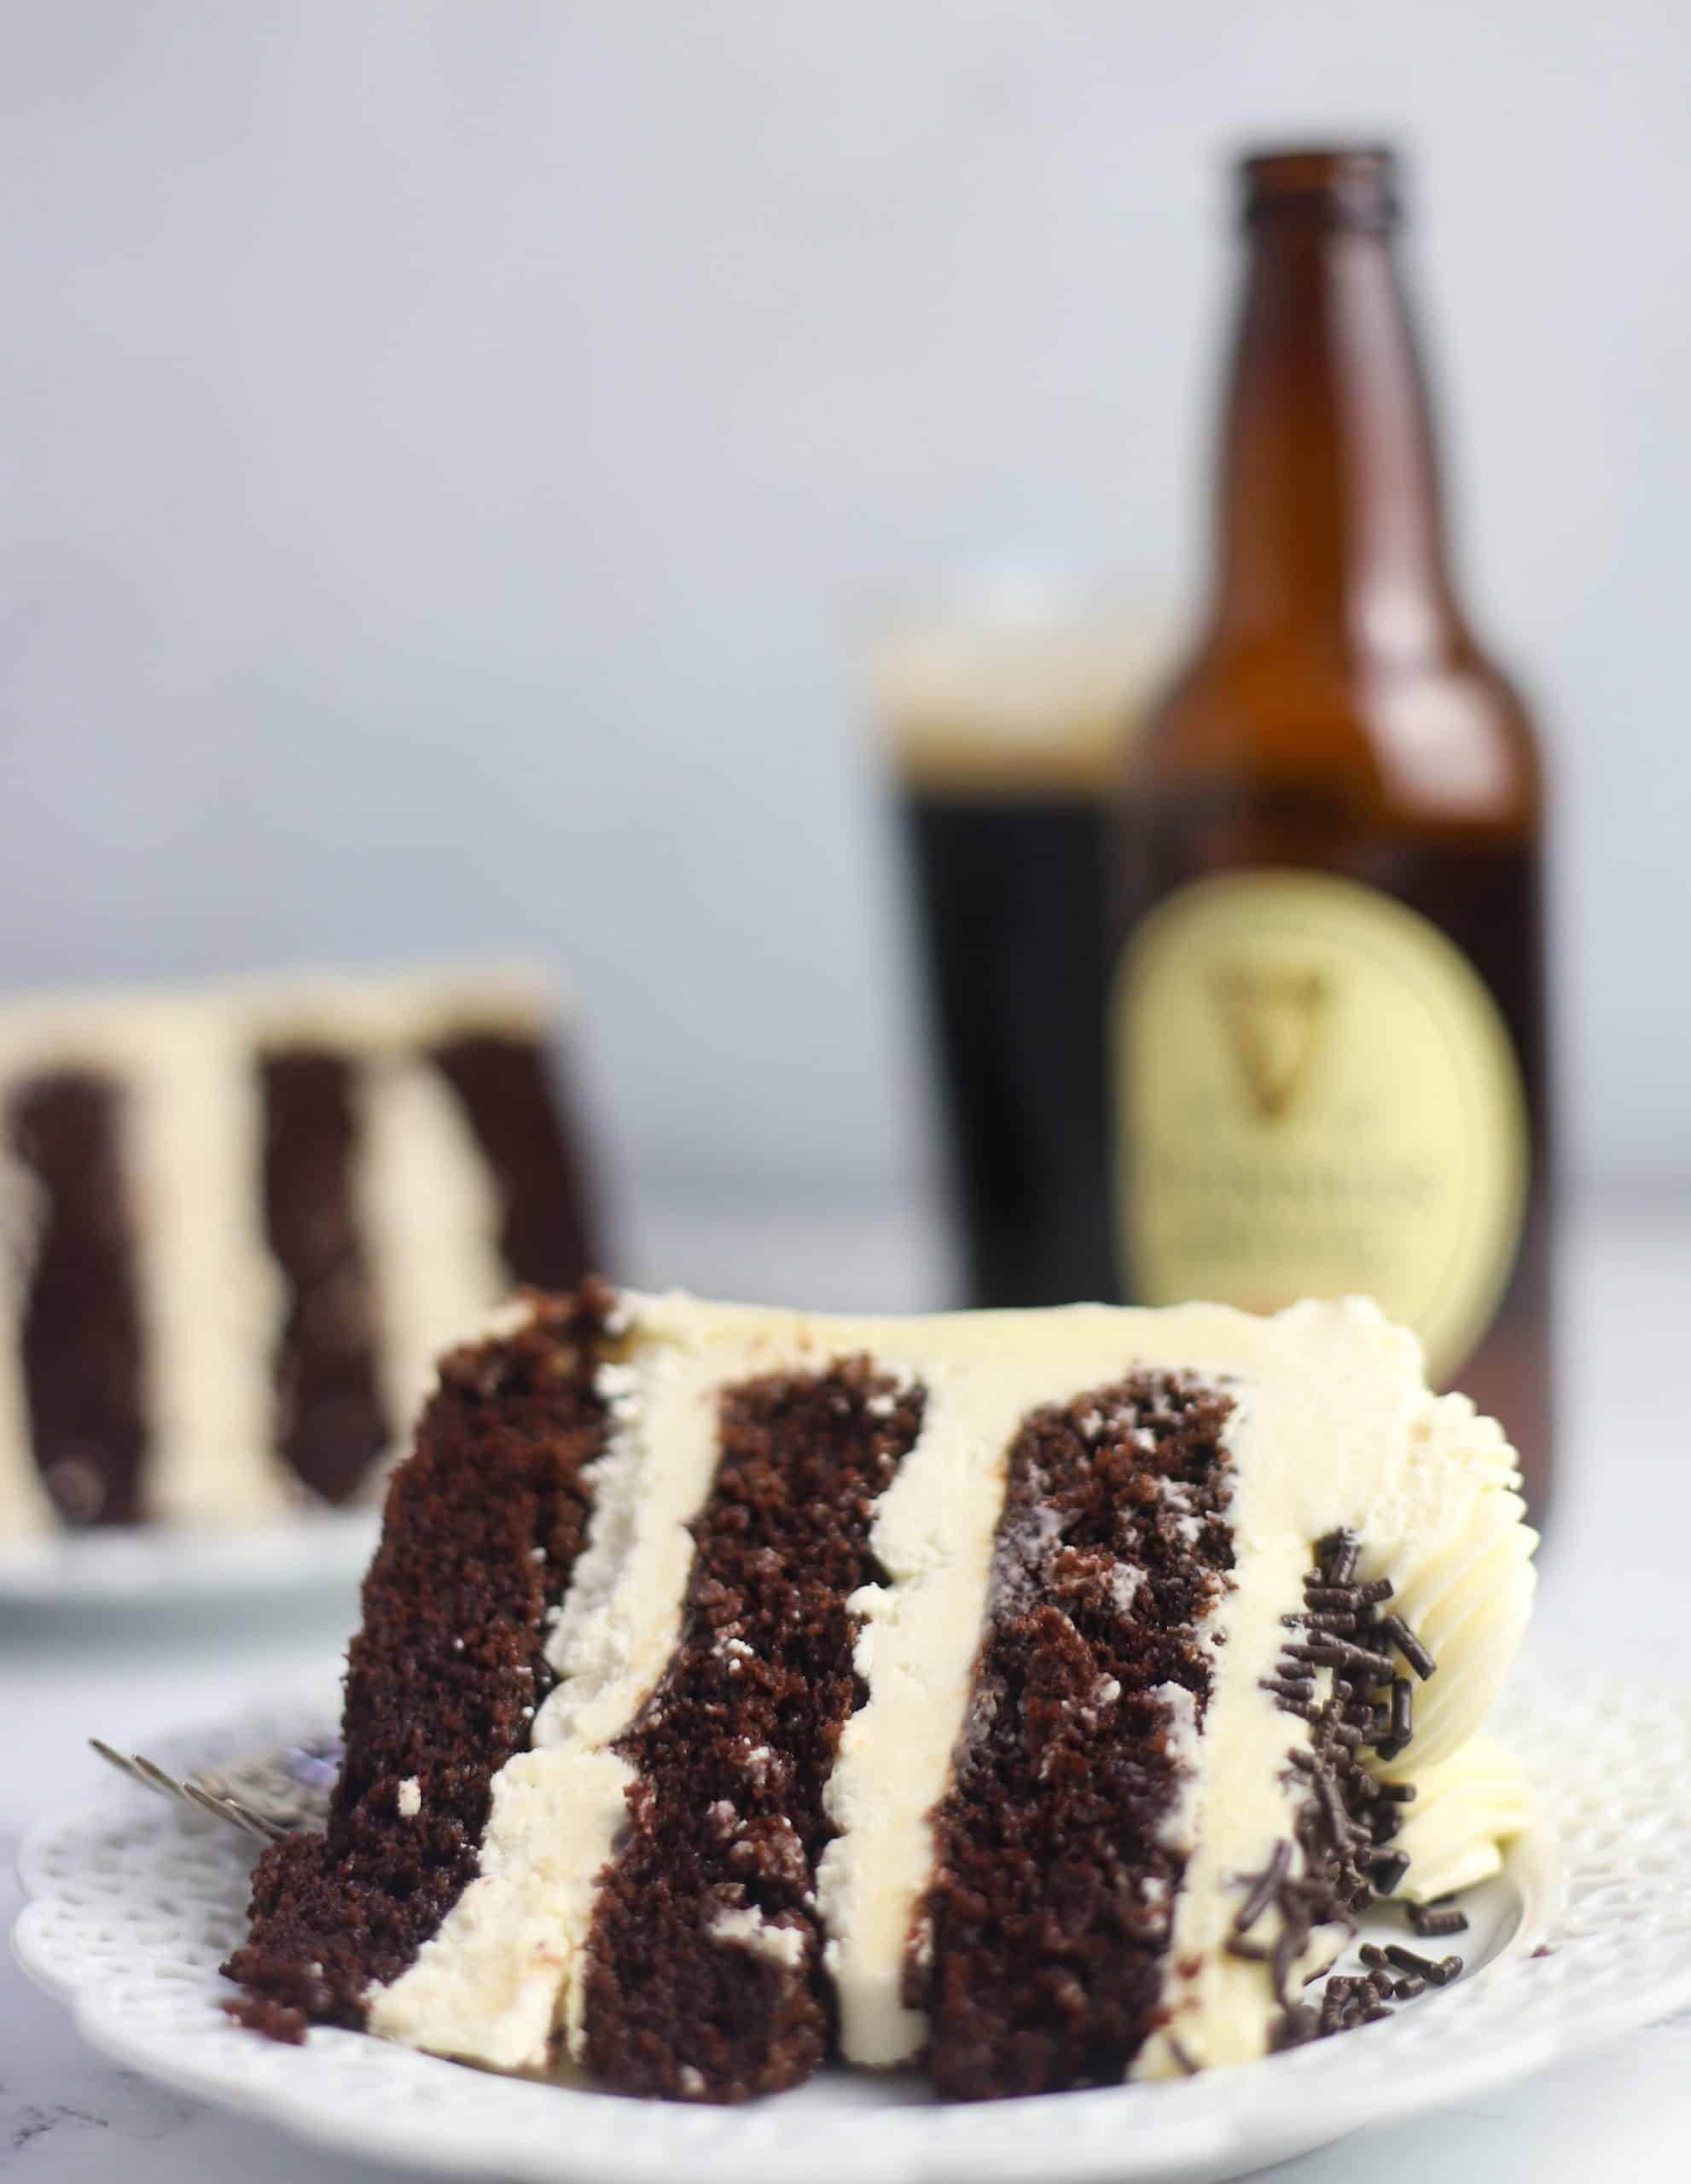 slice of Guinness cake on a plate